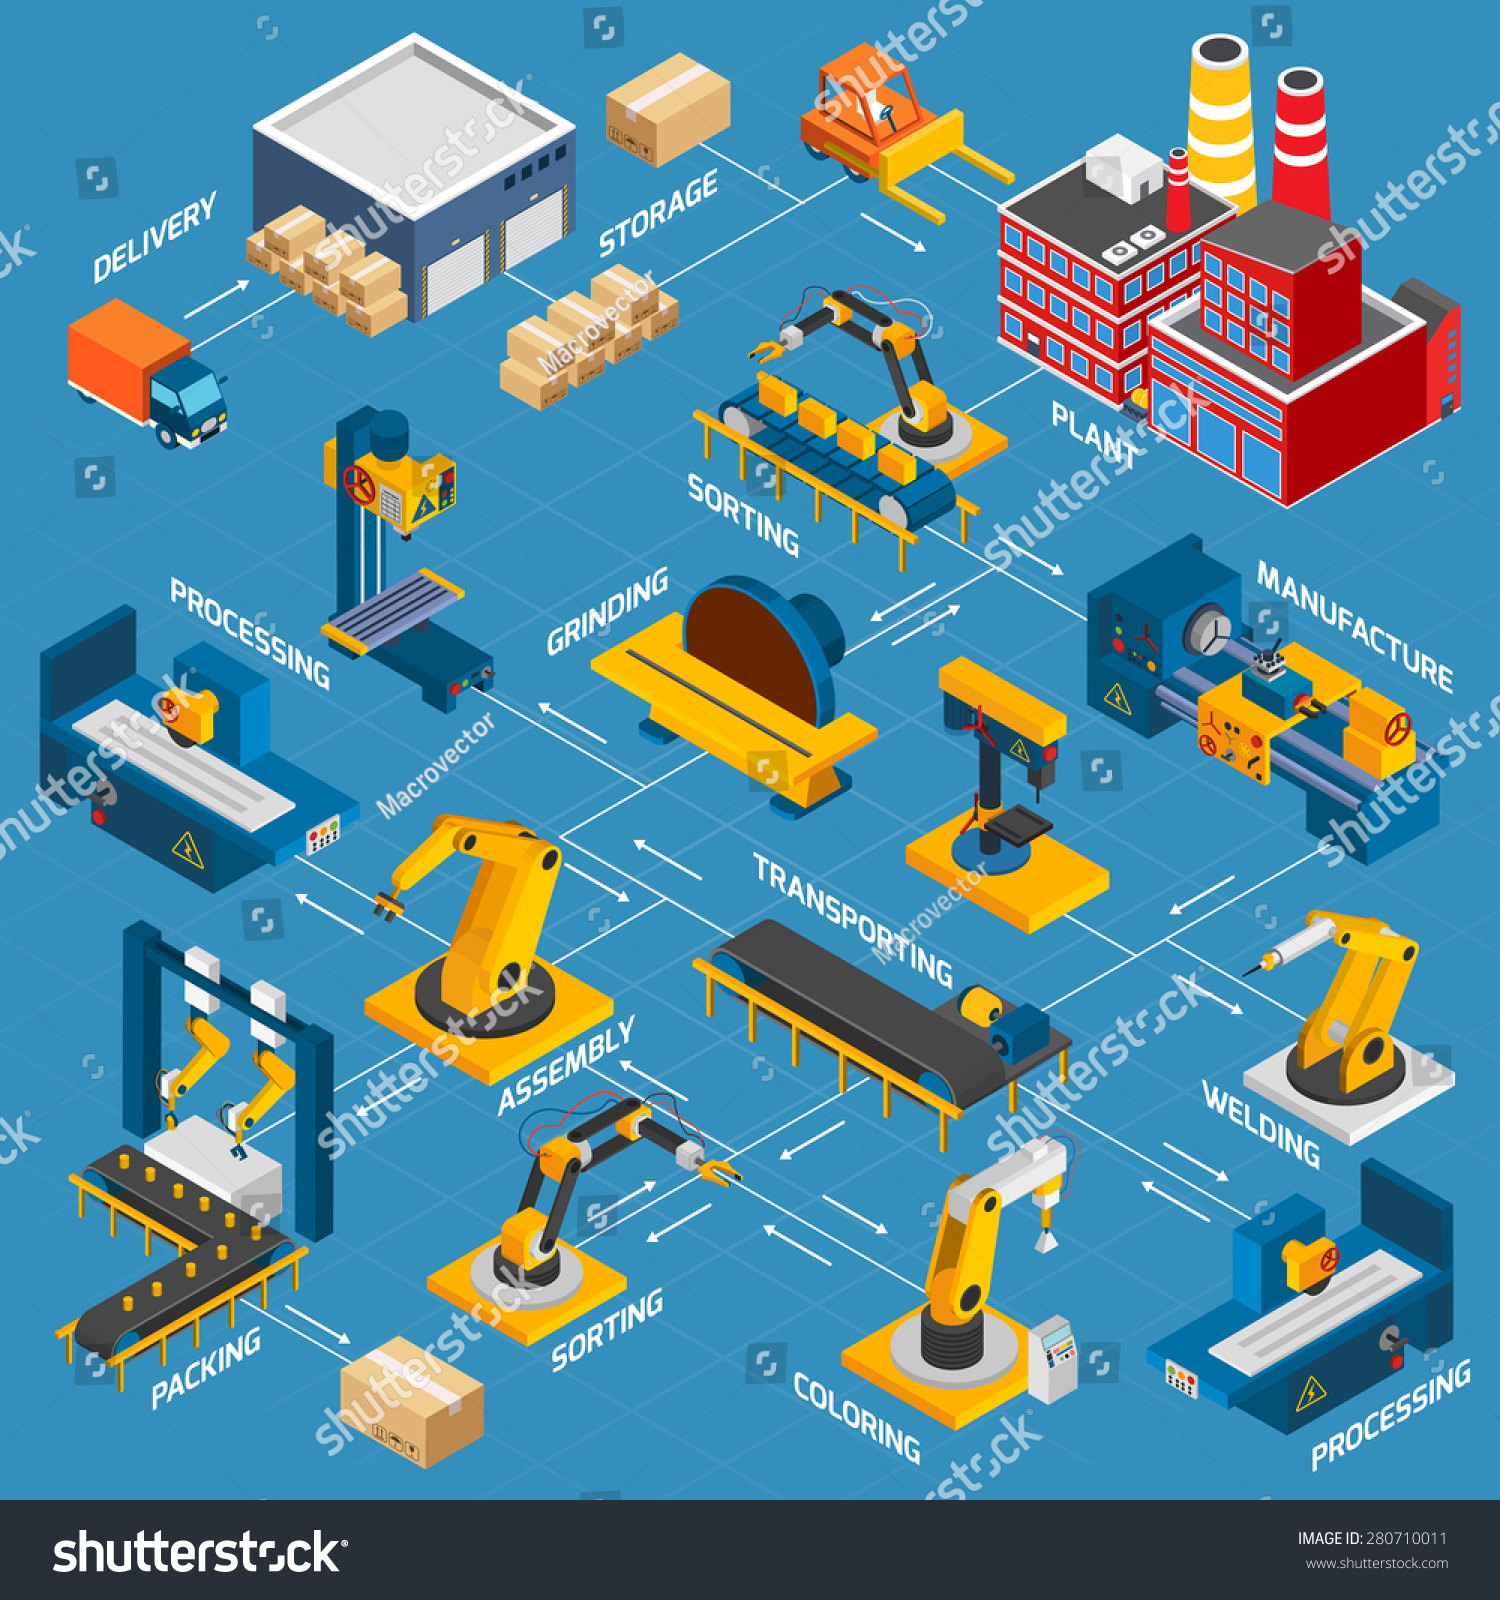 Isometric Factory Flowchart Robotic Machinery Symbols 280710011